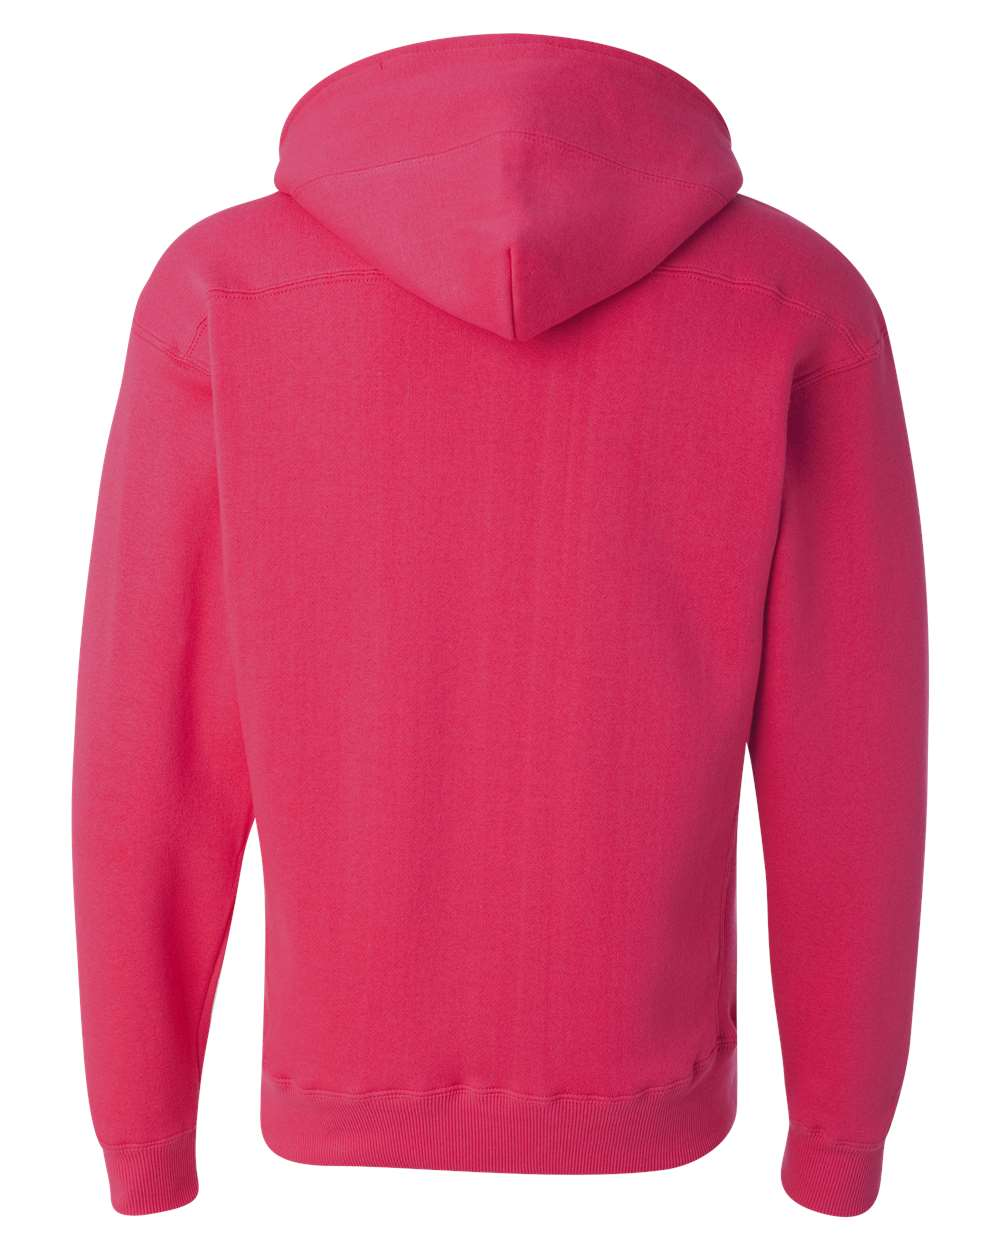 J-America-Mens-Blank-Sport-Lace-Hooded-Sweatshirt-8830-up-to-3XL thumbnail 31